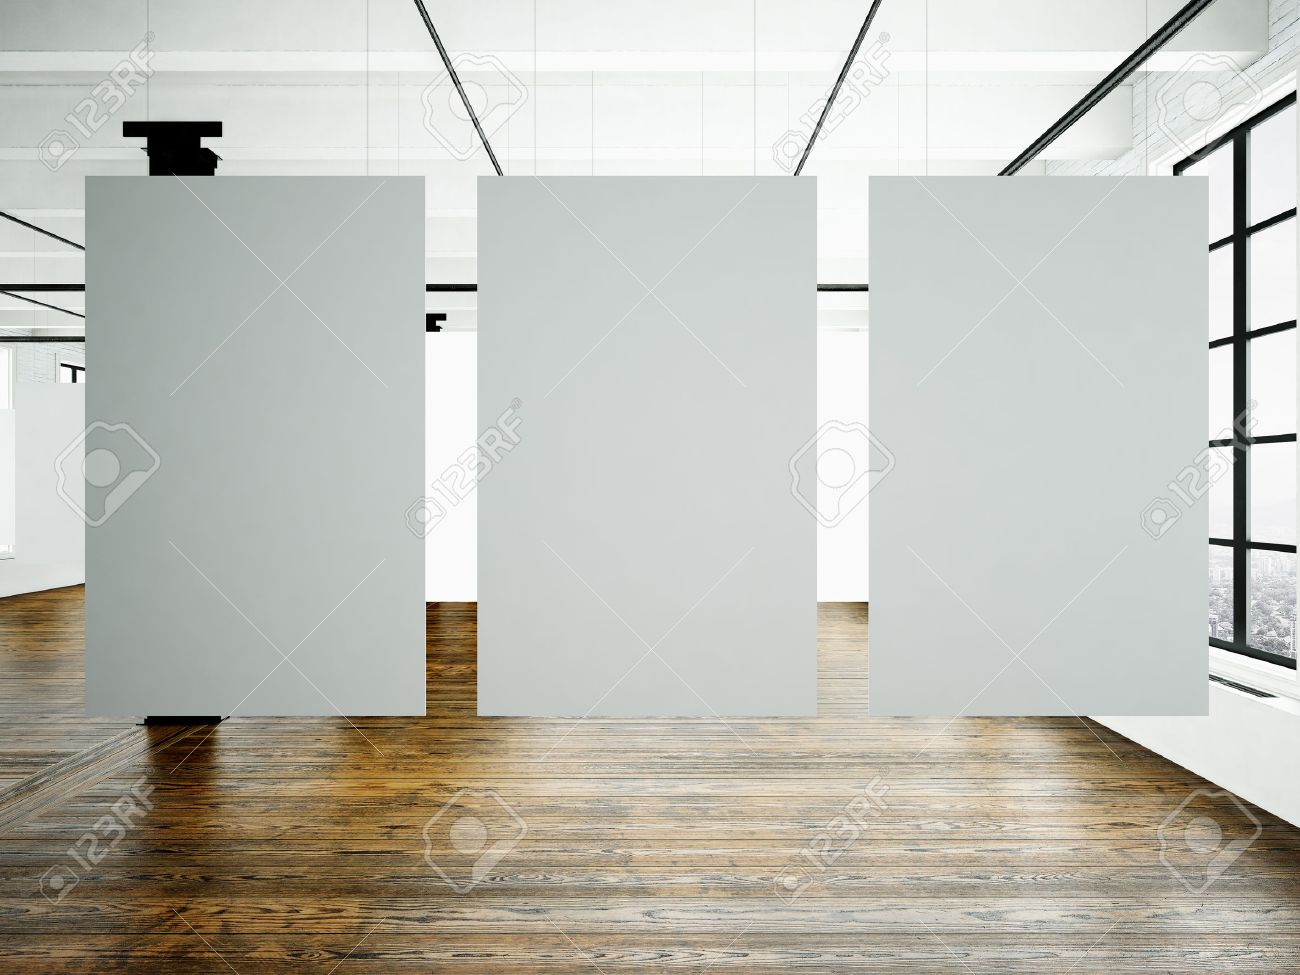 Photo Of Museum Interior In Modern Building.Open Space Studio. Empty White  Canvas Hanging